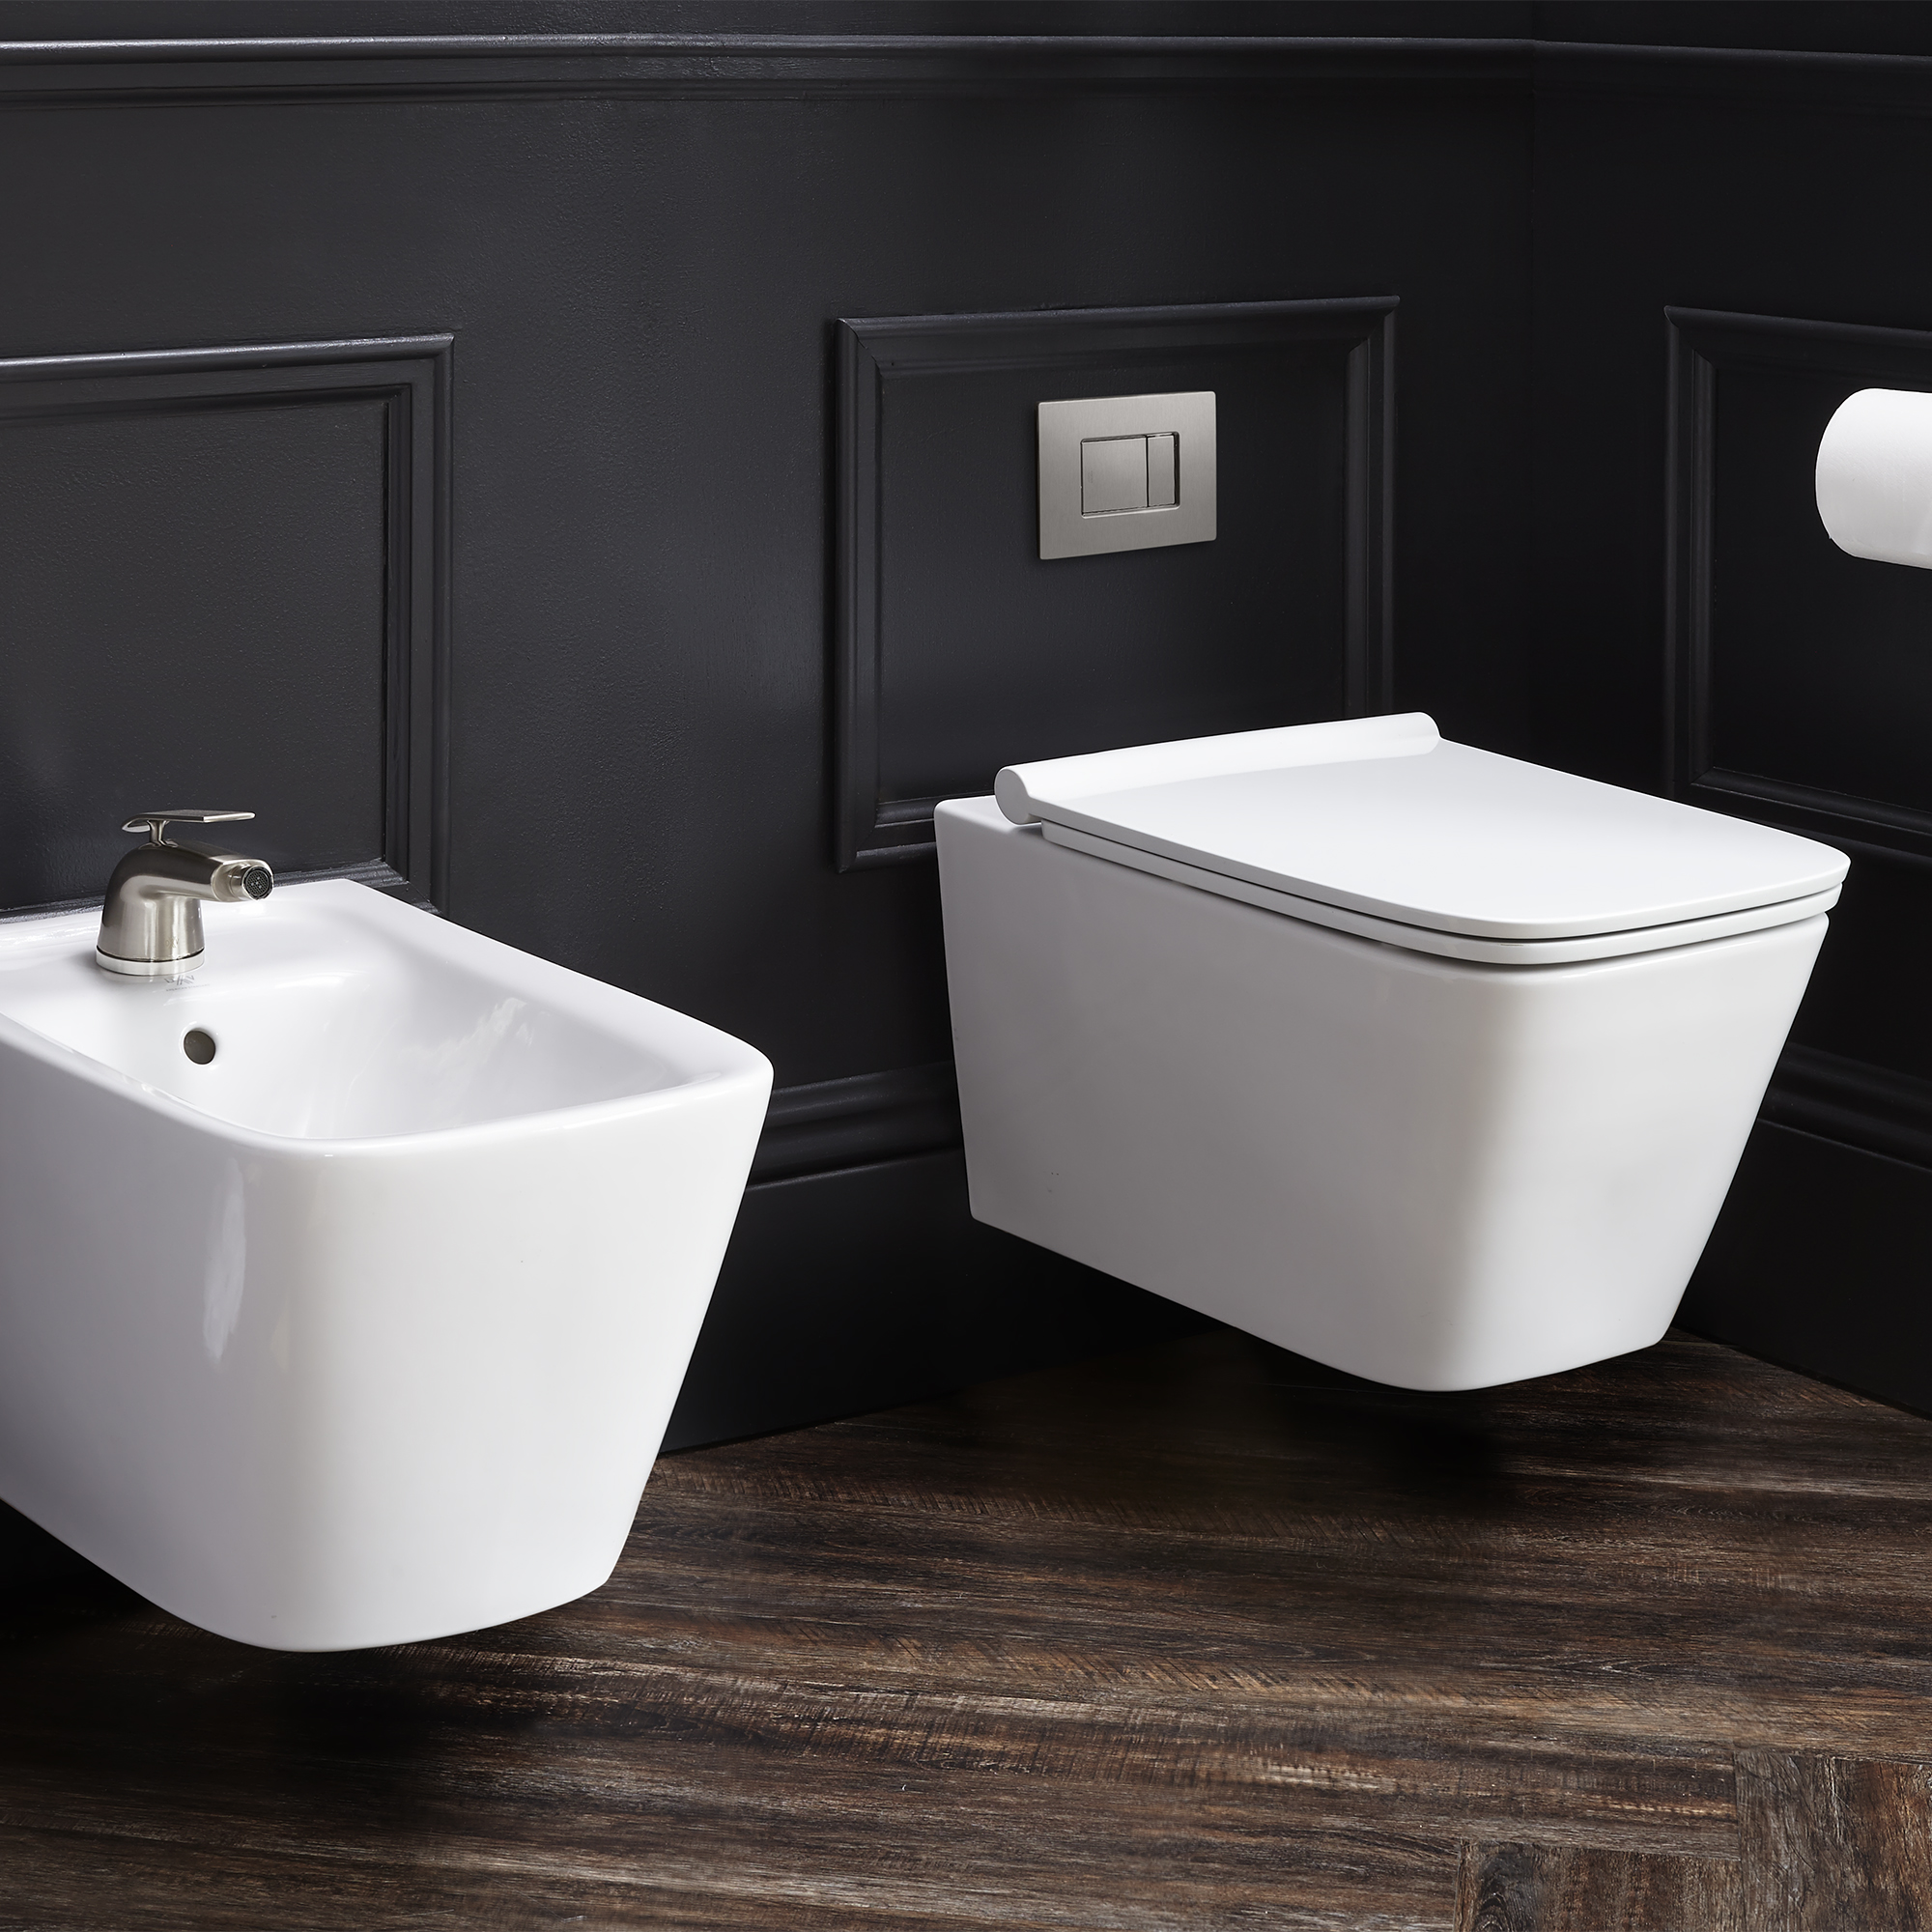 Delicieux DXV Modulus Wall Mounted Elongated Toilet